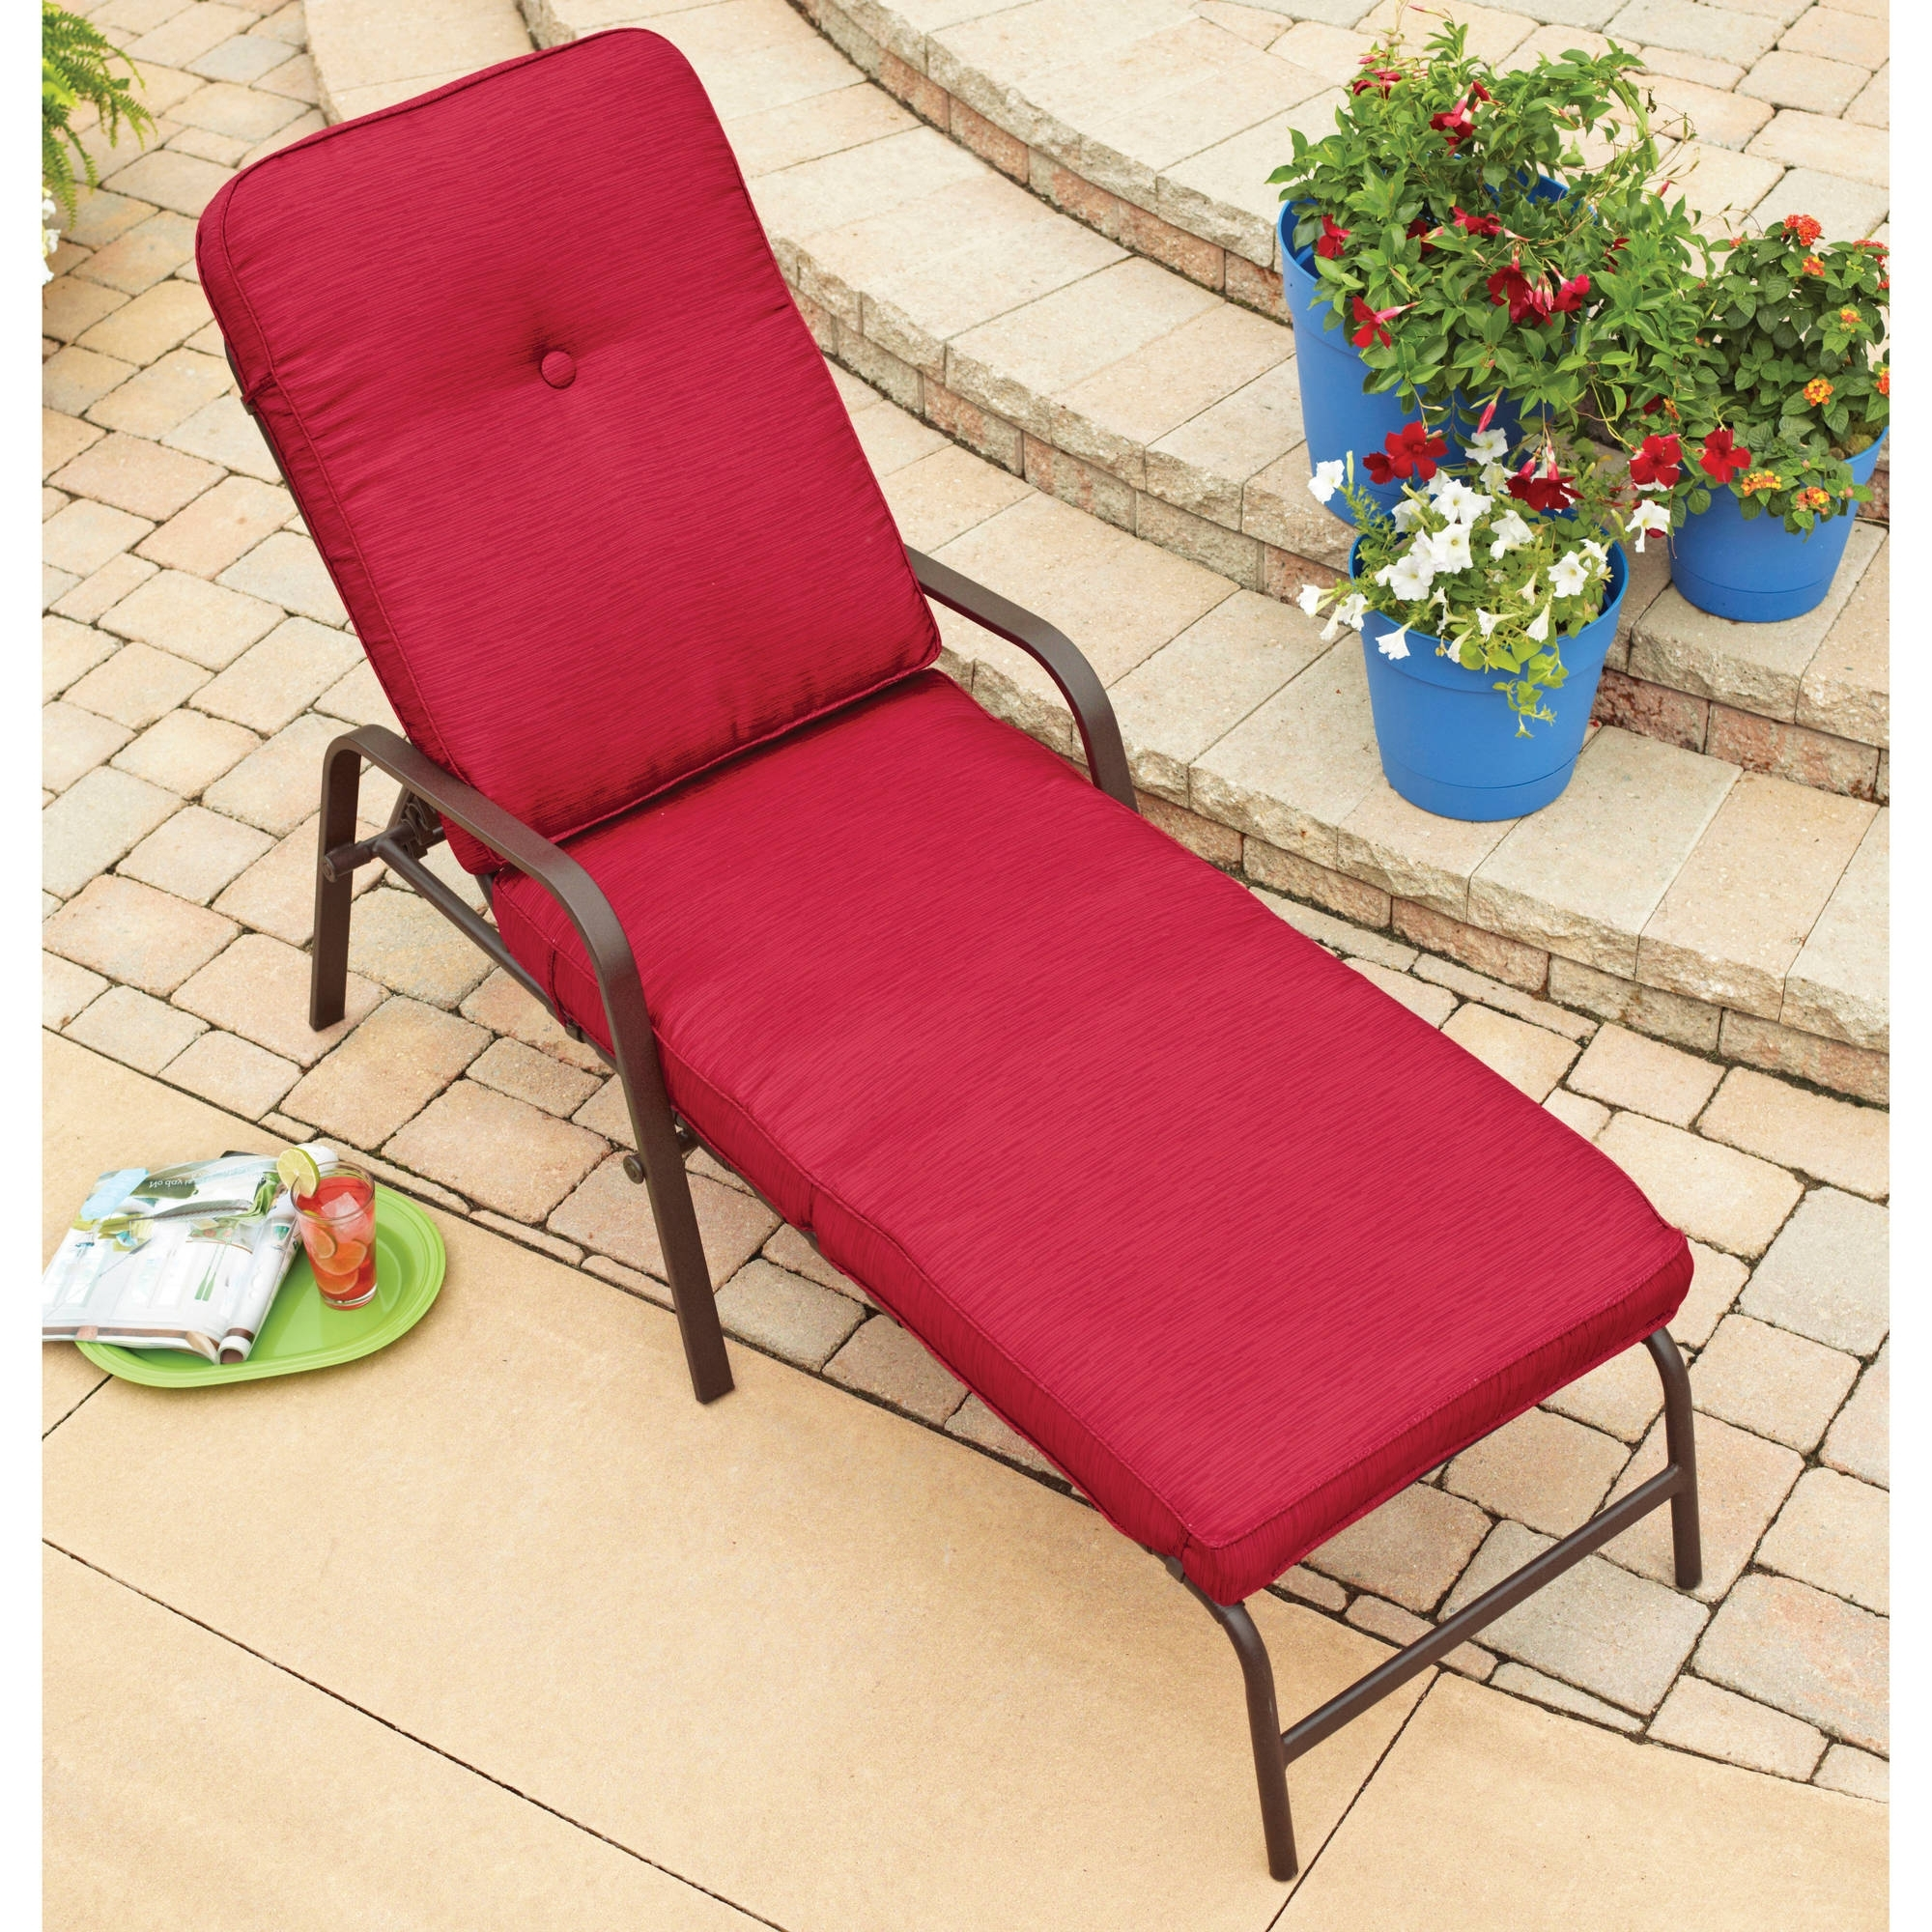 Most Popular Outdoor Chaise Lounge Chairs At Walmart Inside Alluring Patio Chaise Lounge Walmart On Red Outdoor Lounge Chairs (View 5 of 15)